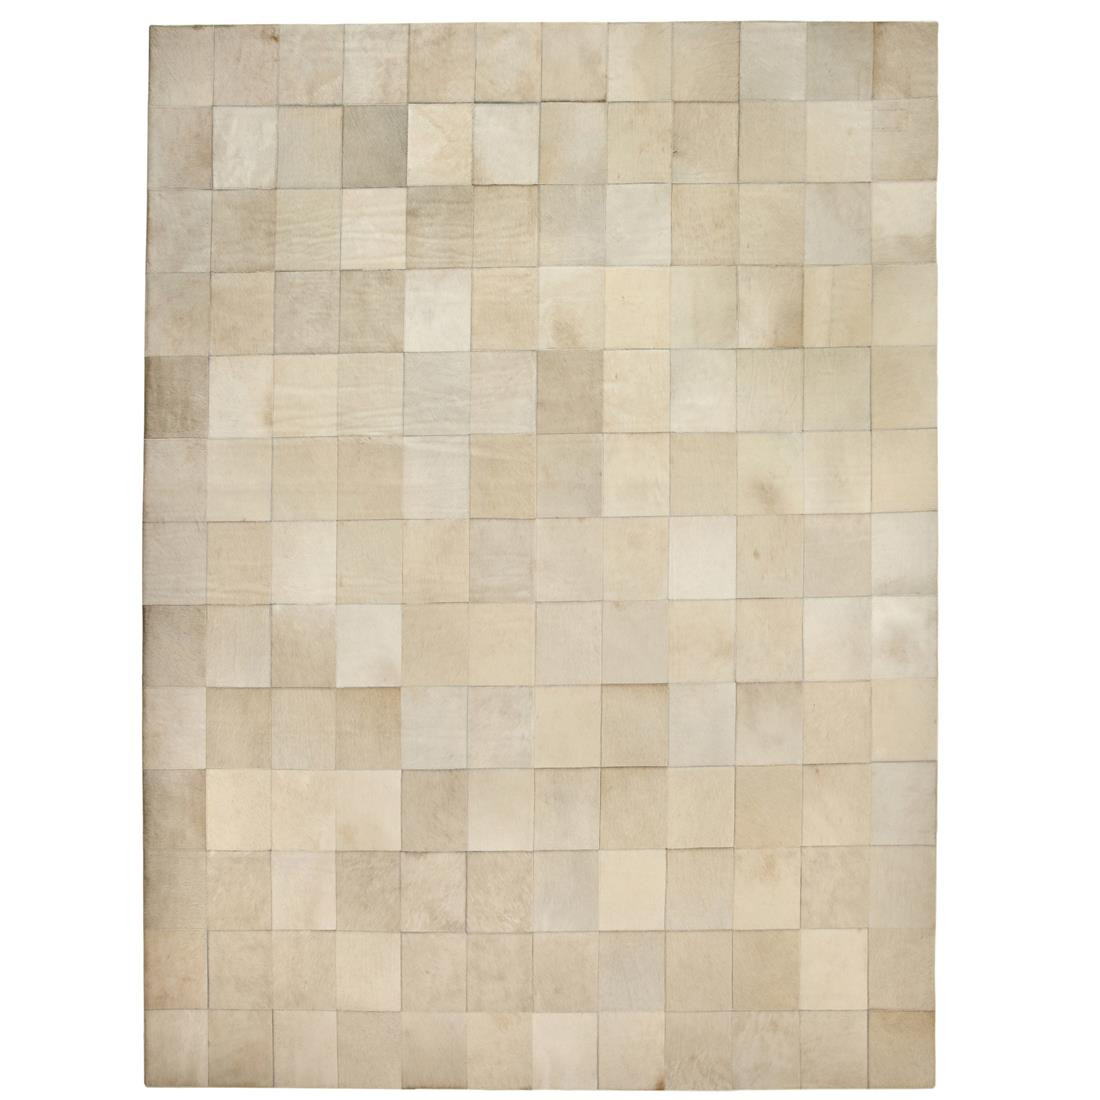 TAPETE COURO NATURAL GOLD LEAT - 2,40x3,00